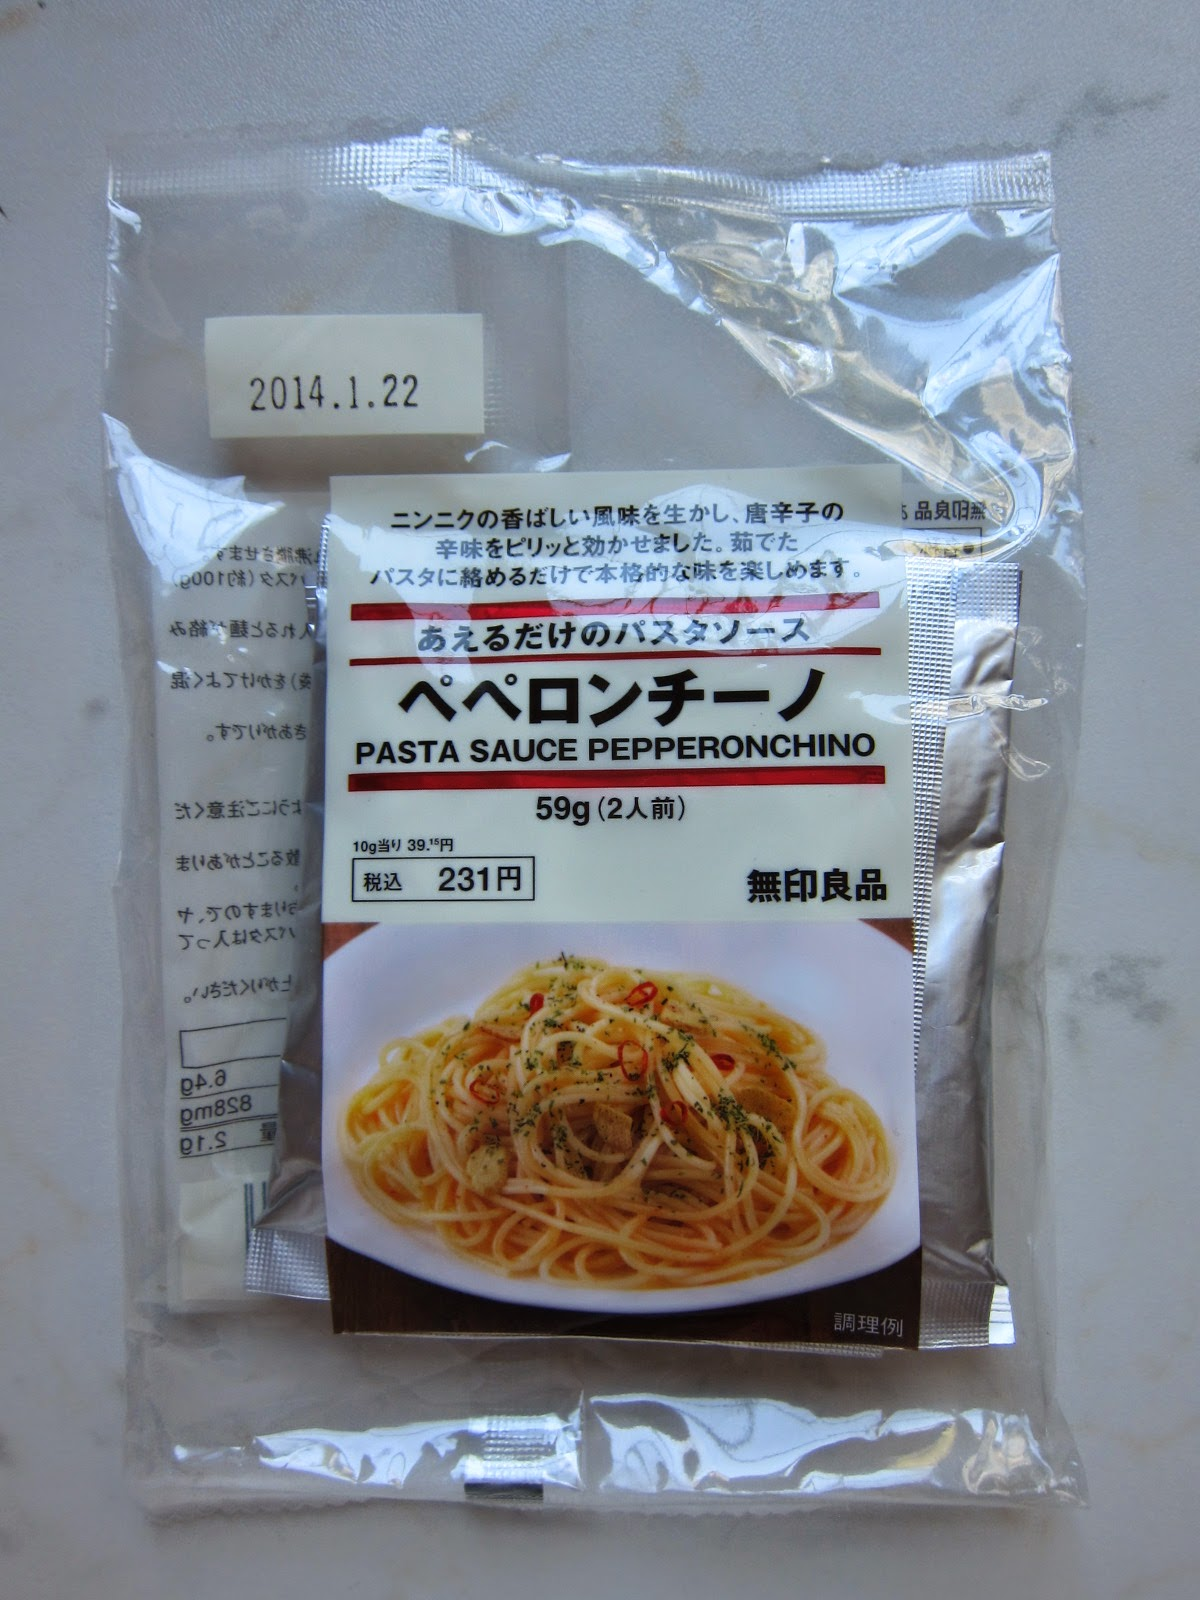 Muji-Pepperonchino-Pasta